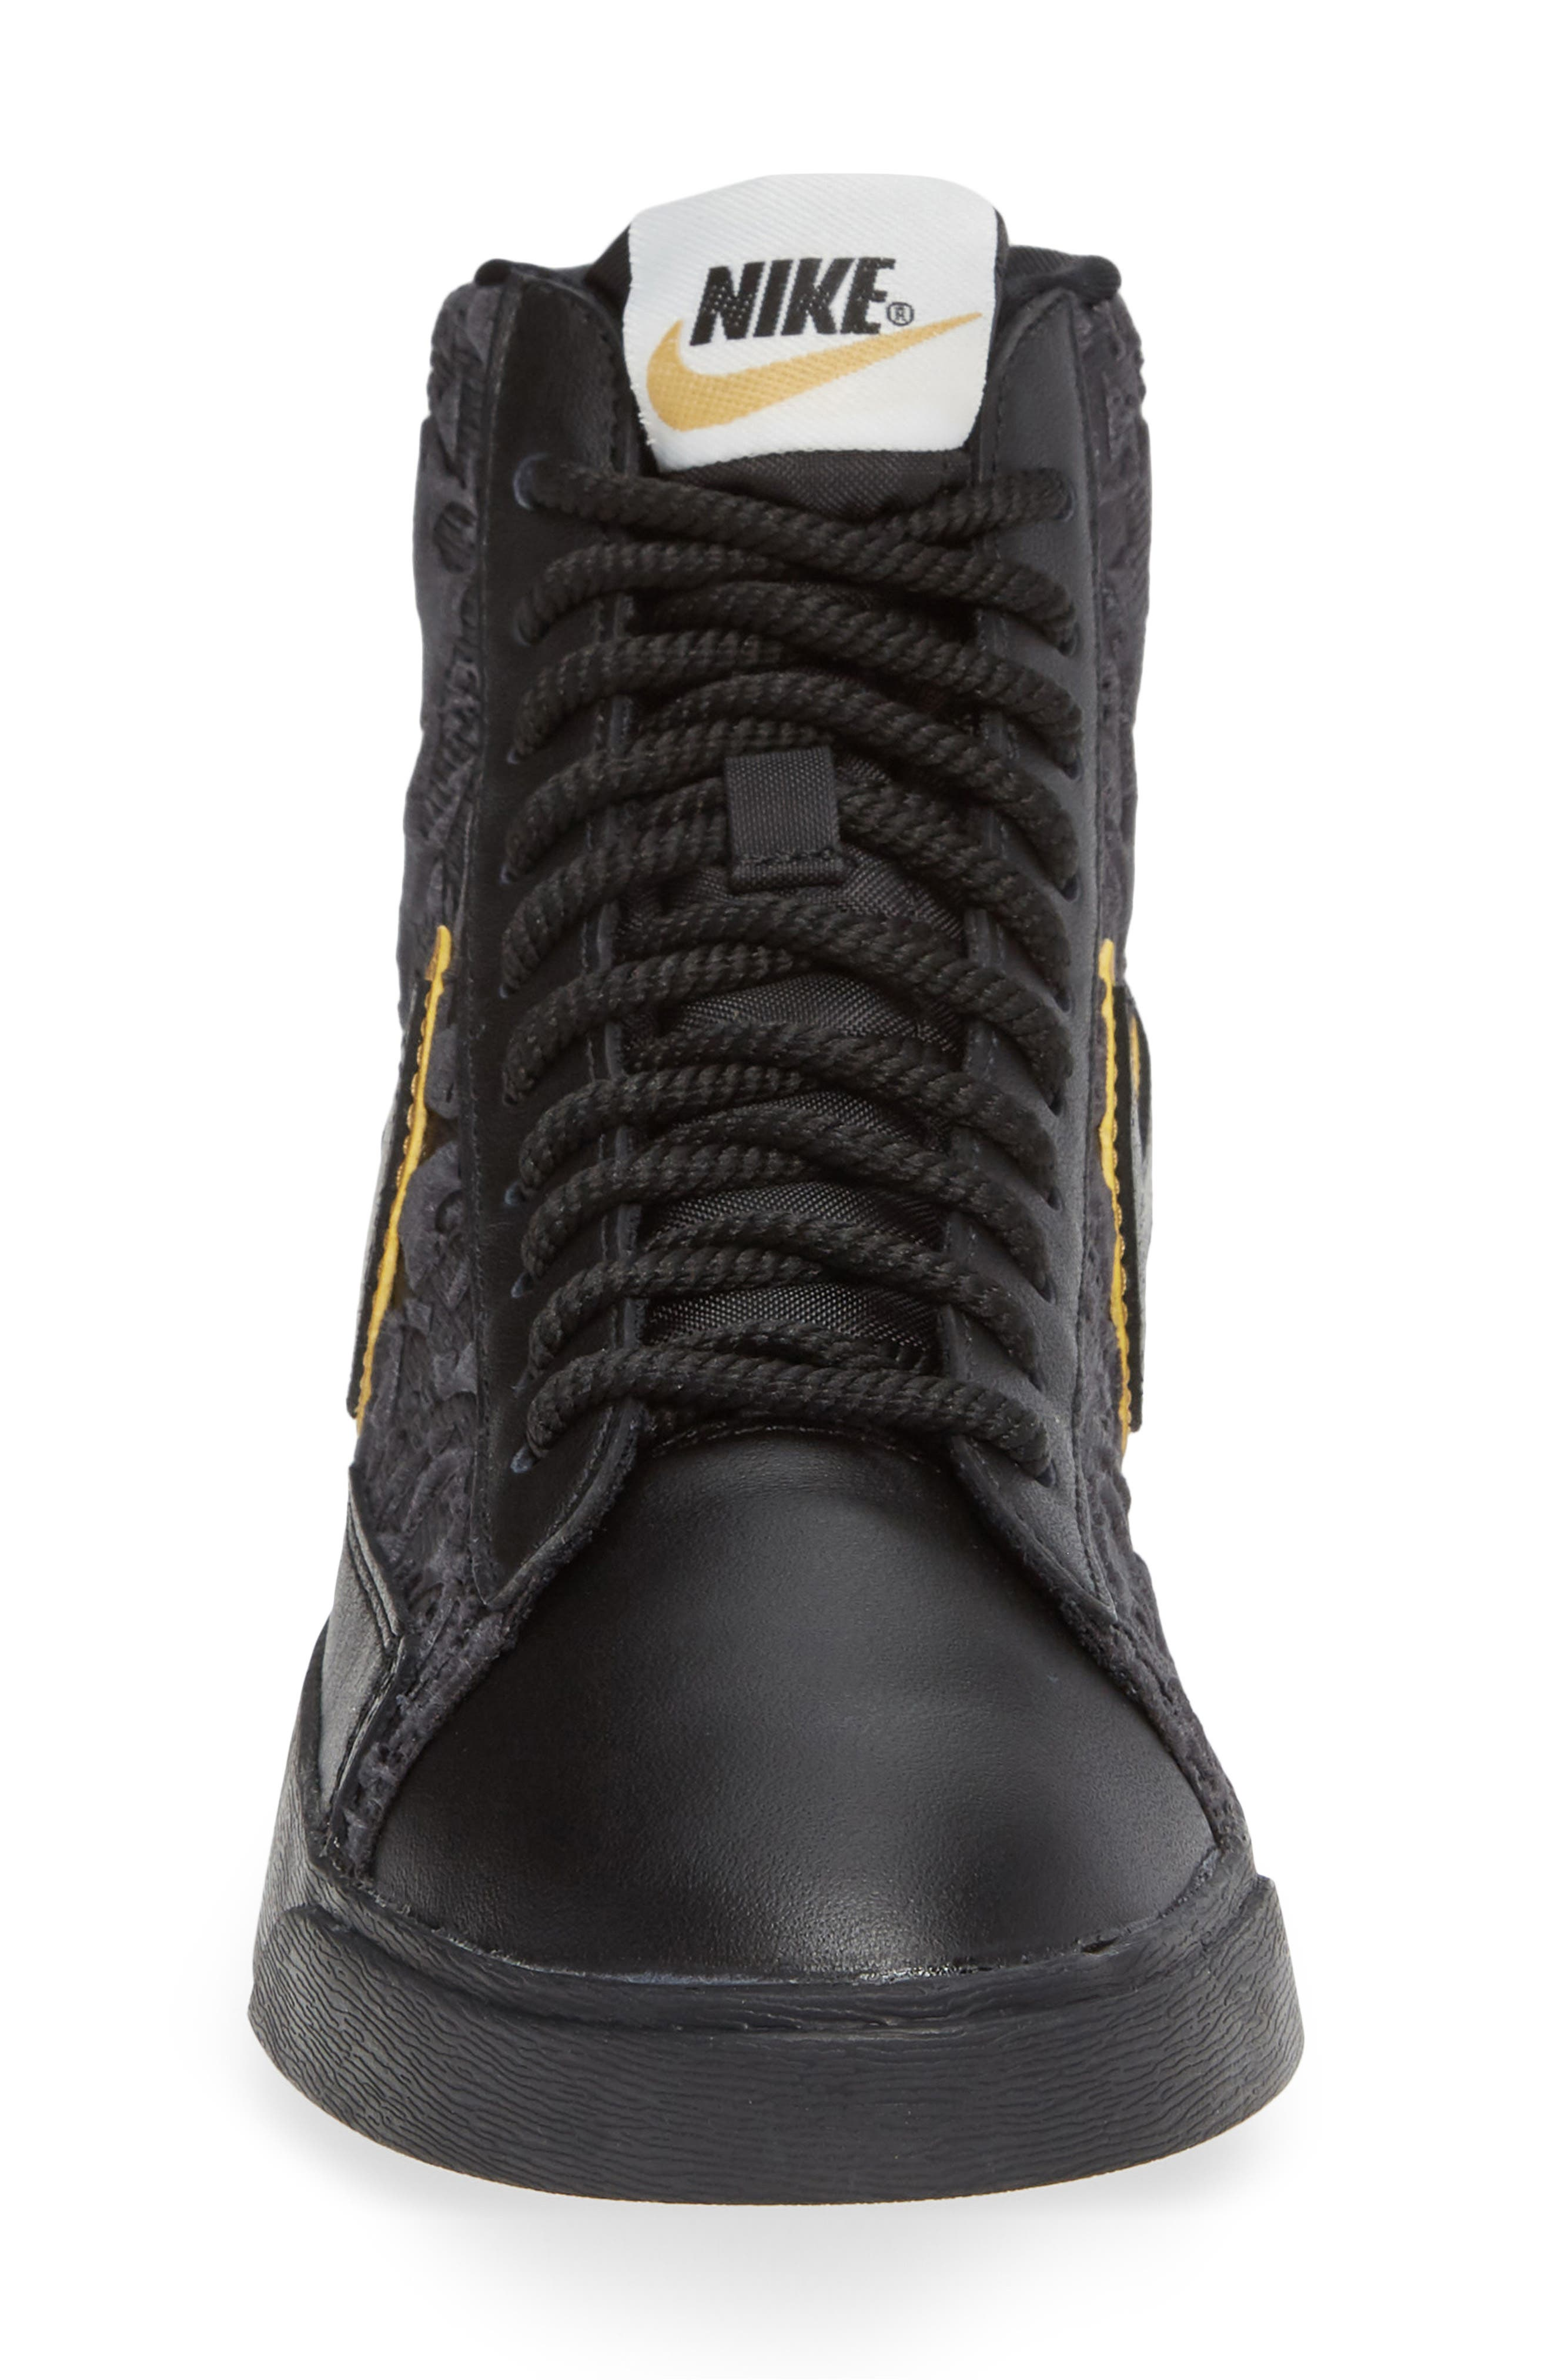 Blazer Mid Top Sneaker,                             Alternate thumbnail 4, color,                             BLACK/ GOLD/ SUMMIT WHITE